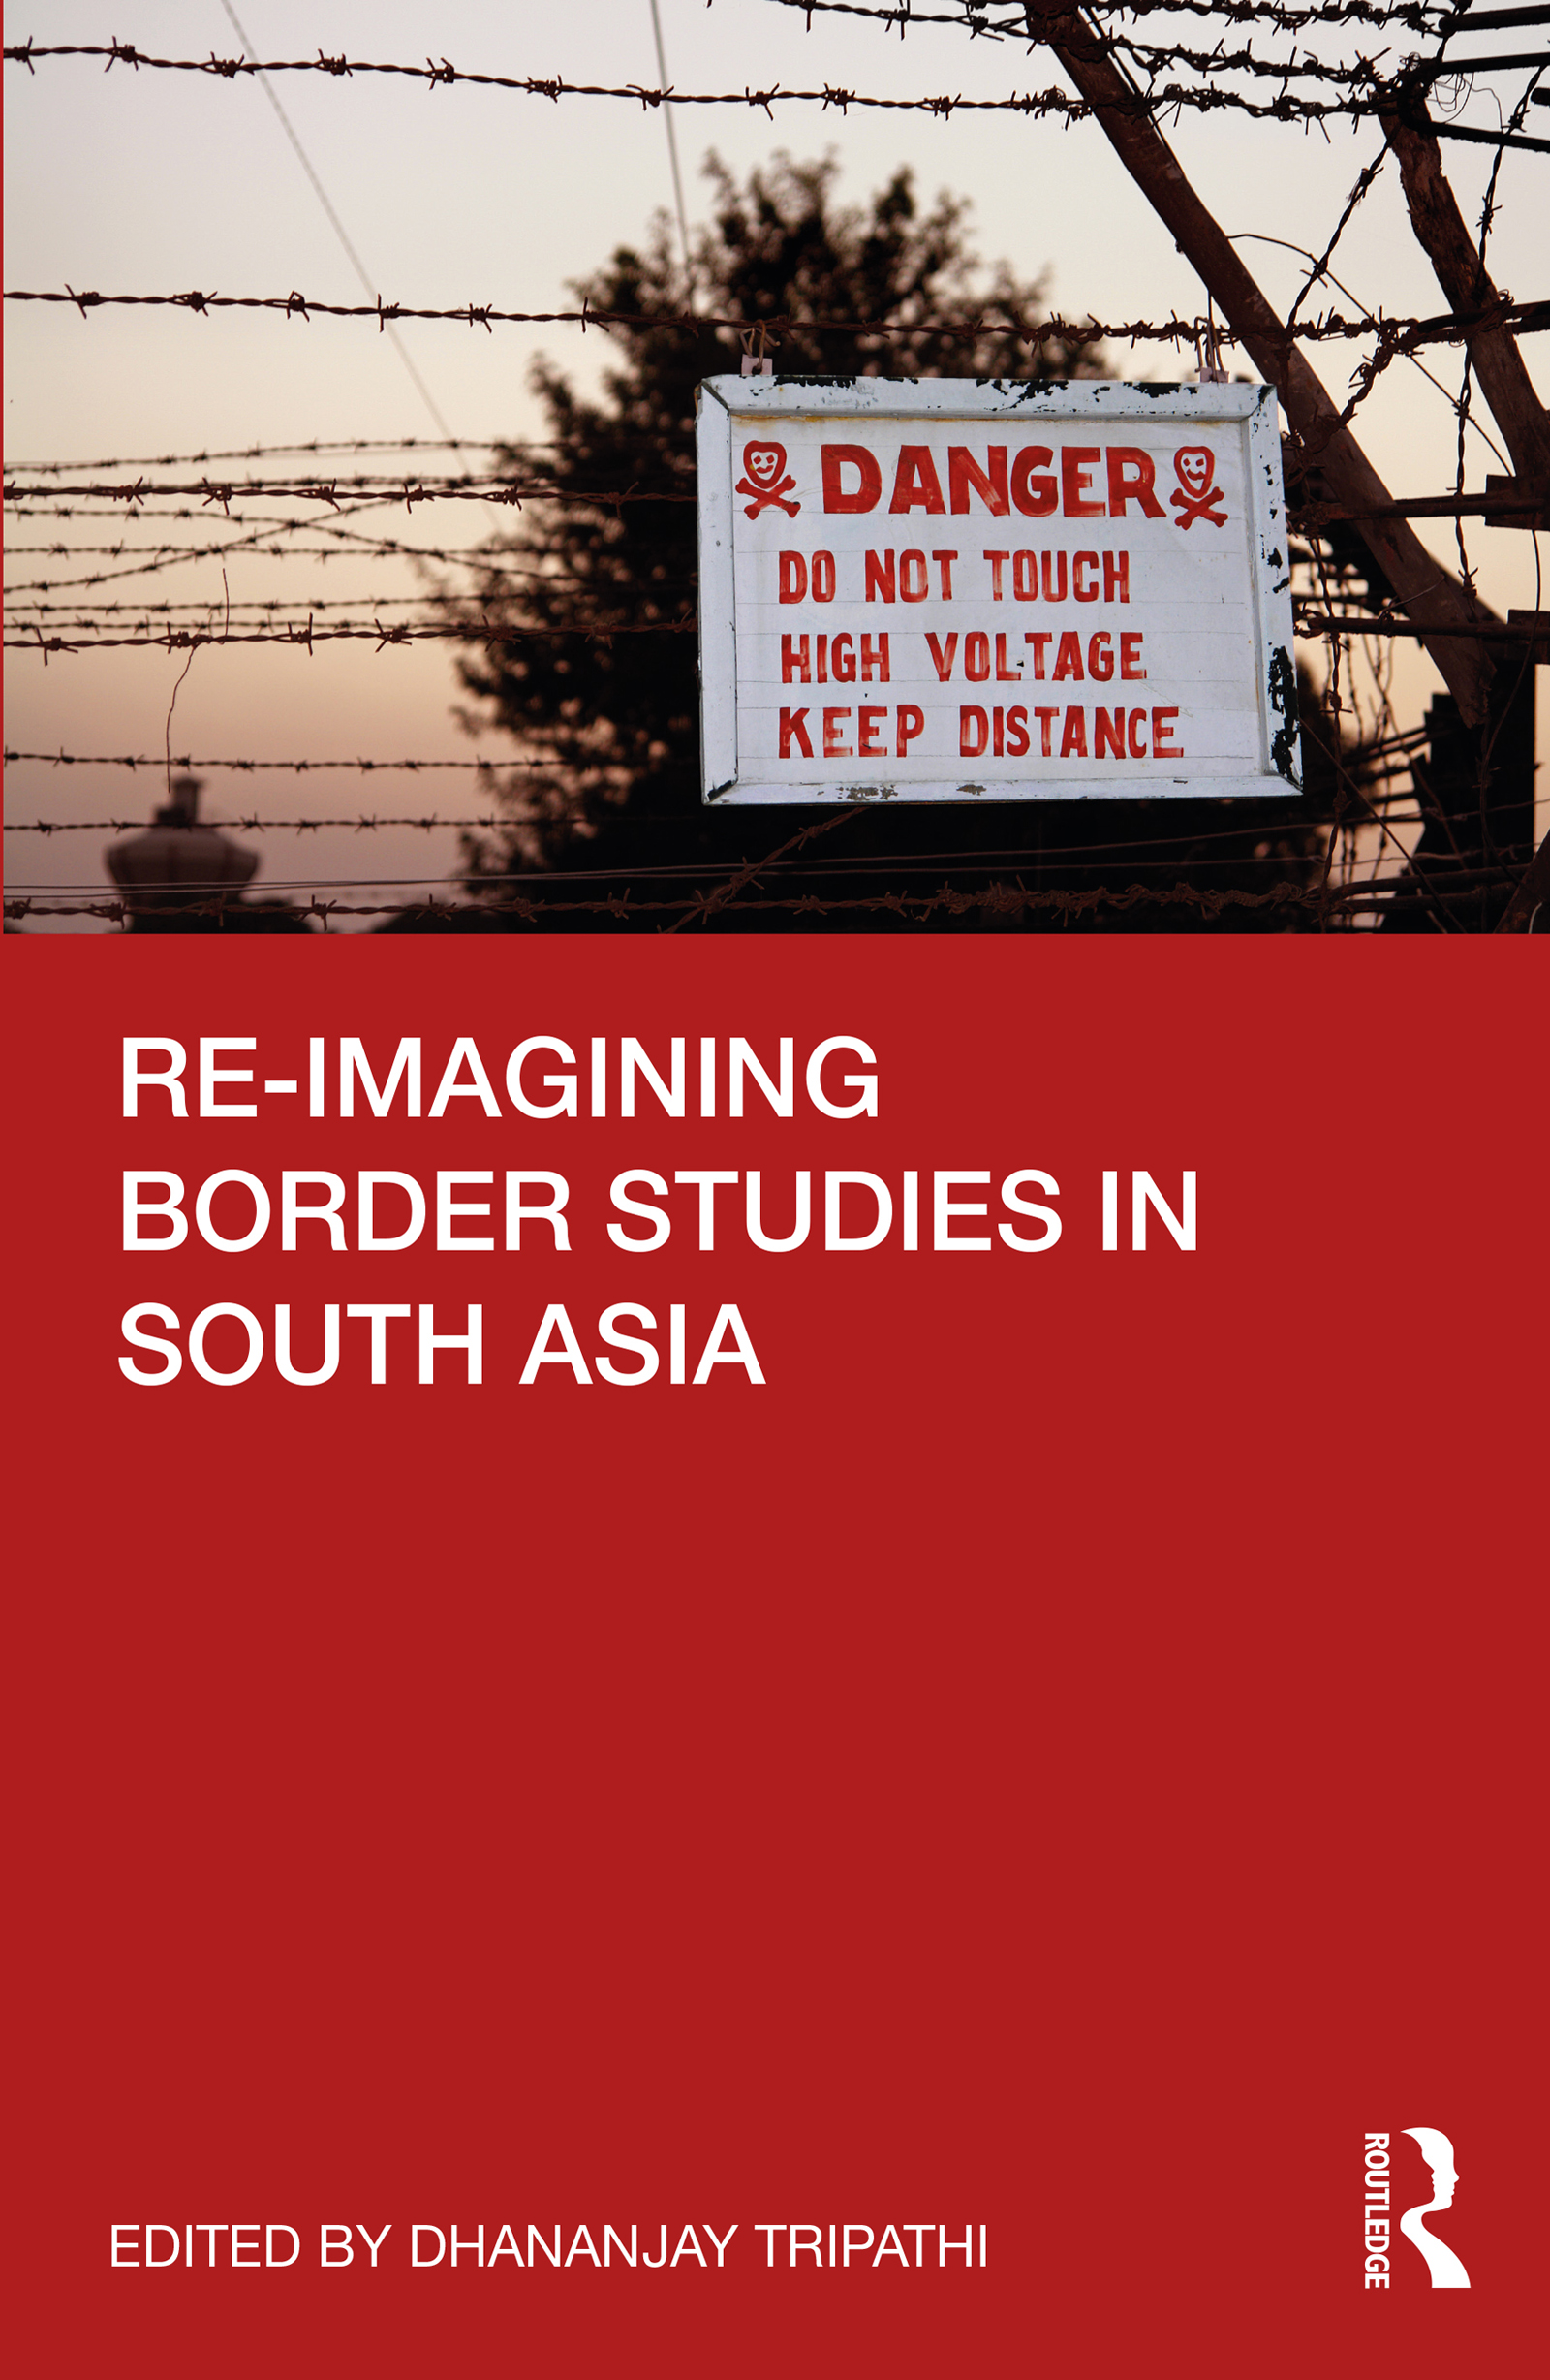 The Chinese concept of sovereignty and the India-China border dispute